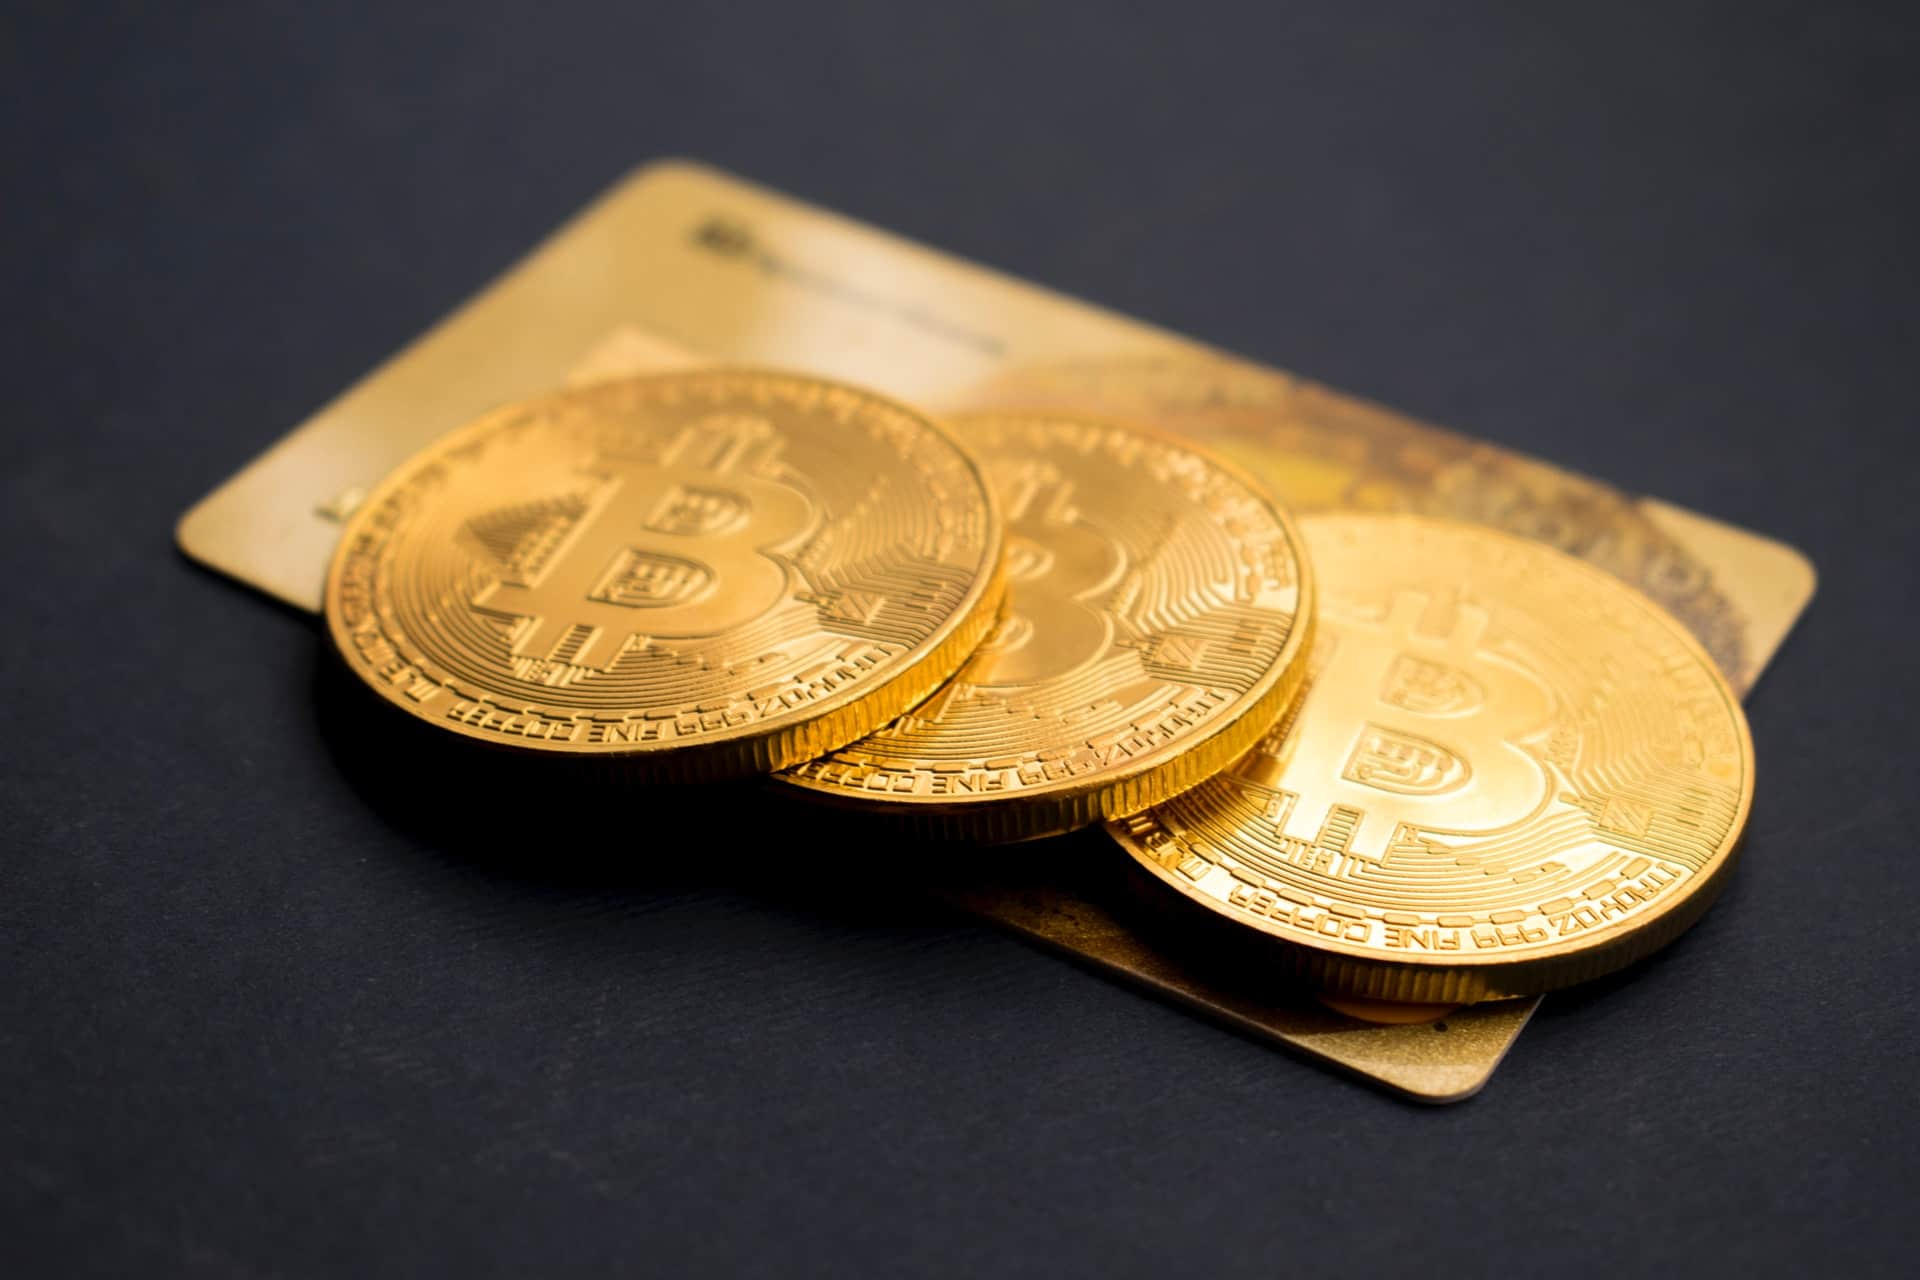 Finance News - Crypto-Linked Credit Card Spending Reaches $1B in 2021